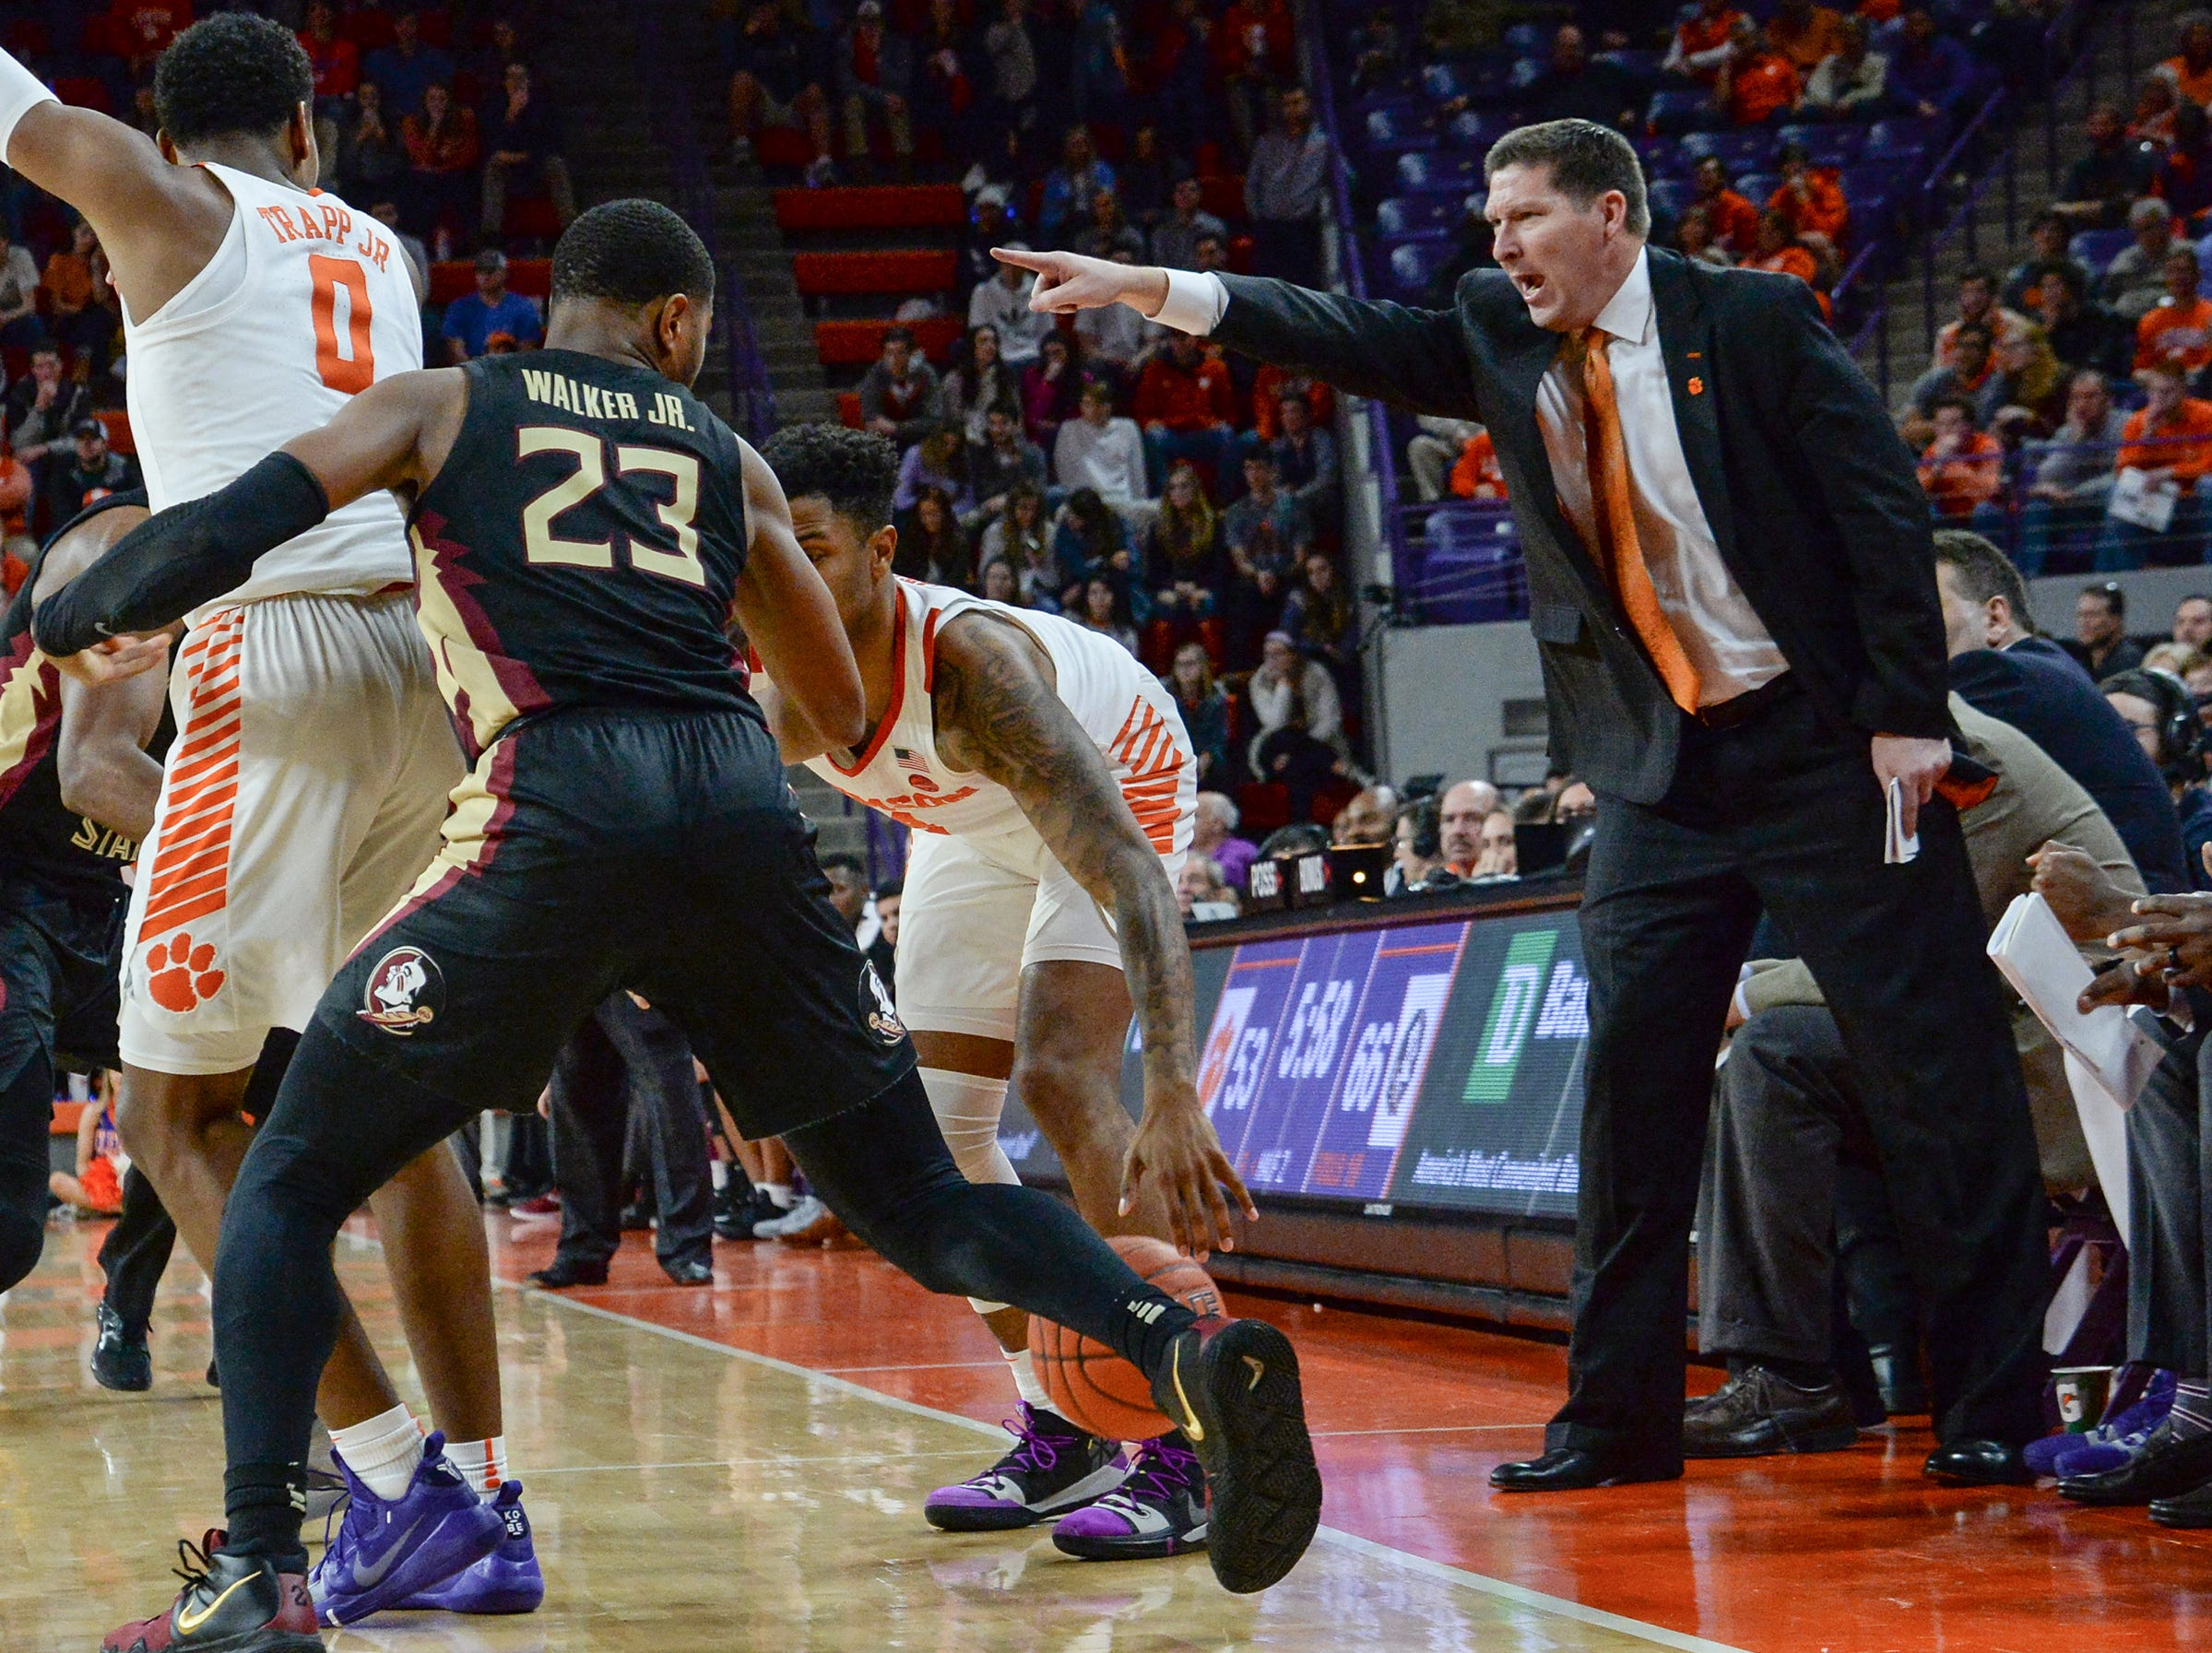 Clemson head coach Brad Brownell gives direction playing Florida State during the second half at Littlejohn Coliseum in Clemson Tuesday, February 19, 2019.